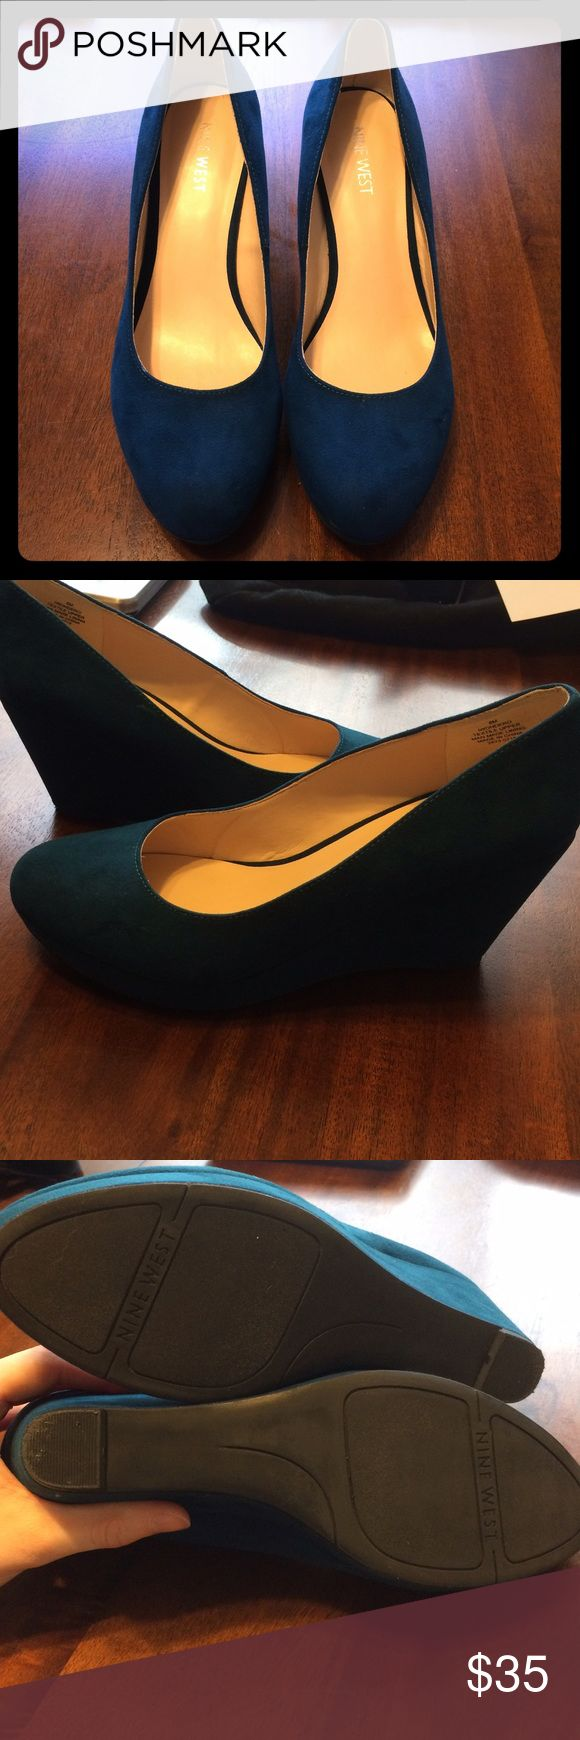 Nine West Teal Wedge Heels Nine West Teal Wedge Heels. Size 8. Fits an 8/8.5 foot. Worn twice. Great condition. Stored in a dry, clean, smoke free environment. Make an offer! Nine West Shoes Wedges